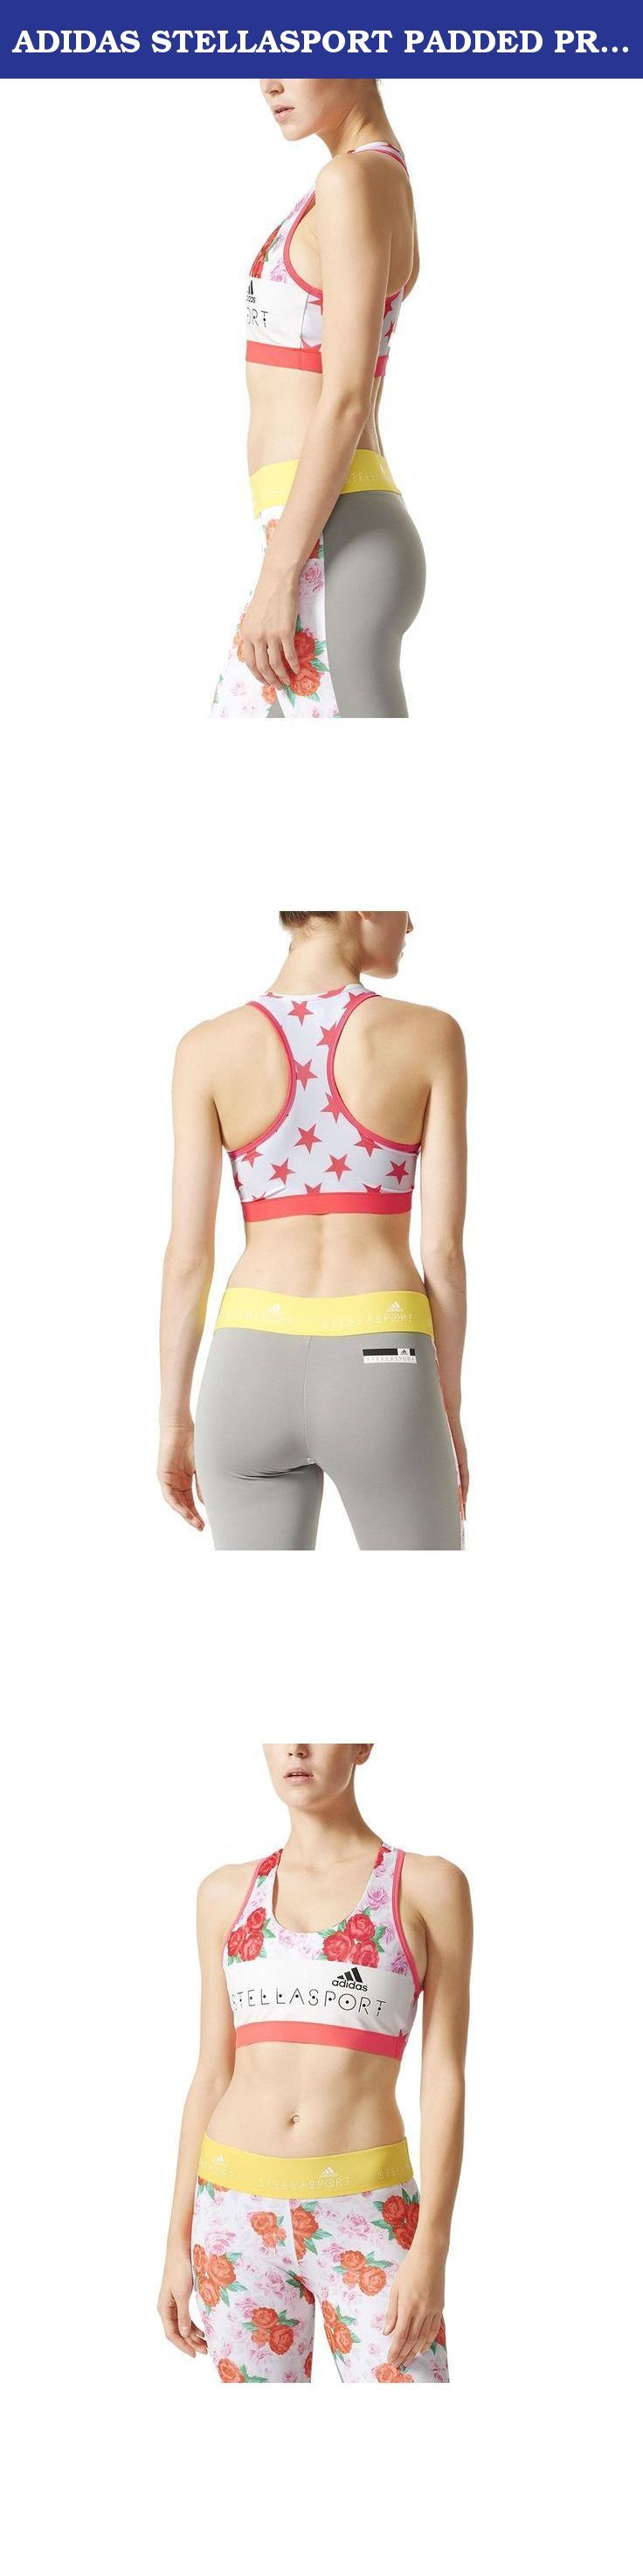 ADIDAS STELLASPORT PADDED PRINT SPORT BRA (S). Fresh pops of colour and bold patterns define this season's adidas STELLASPORT collection. A team effort between adidas and Stella McCartney, the line puts Stella's fun, youthful spin on favourite sportswear styles. Designed for medium support, this adidas STELLASPORT workout bra is built of super-breathable fabric so you stay dry and comfortable. With contrasting edging and a front-and-centre Stella logo.